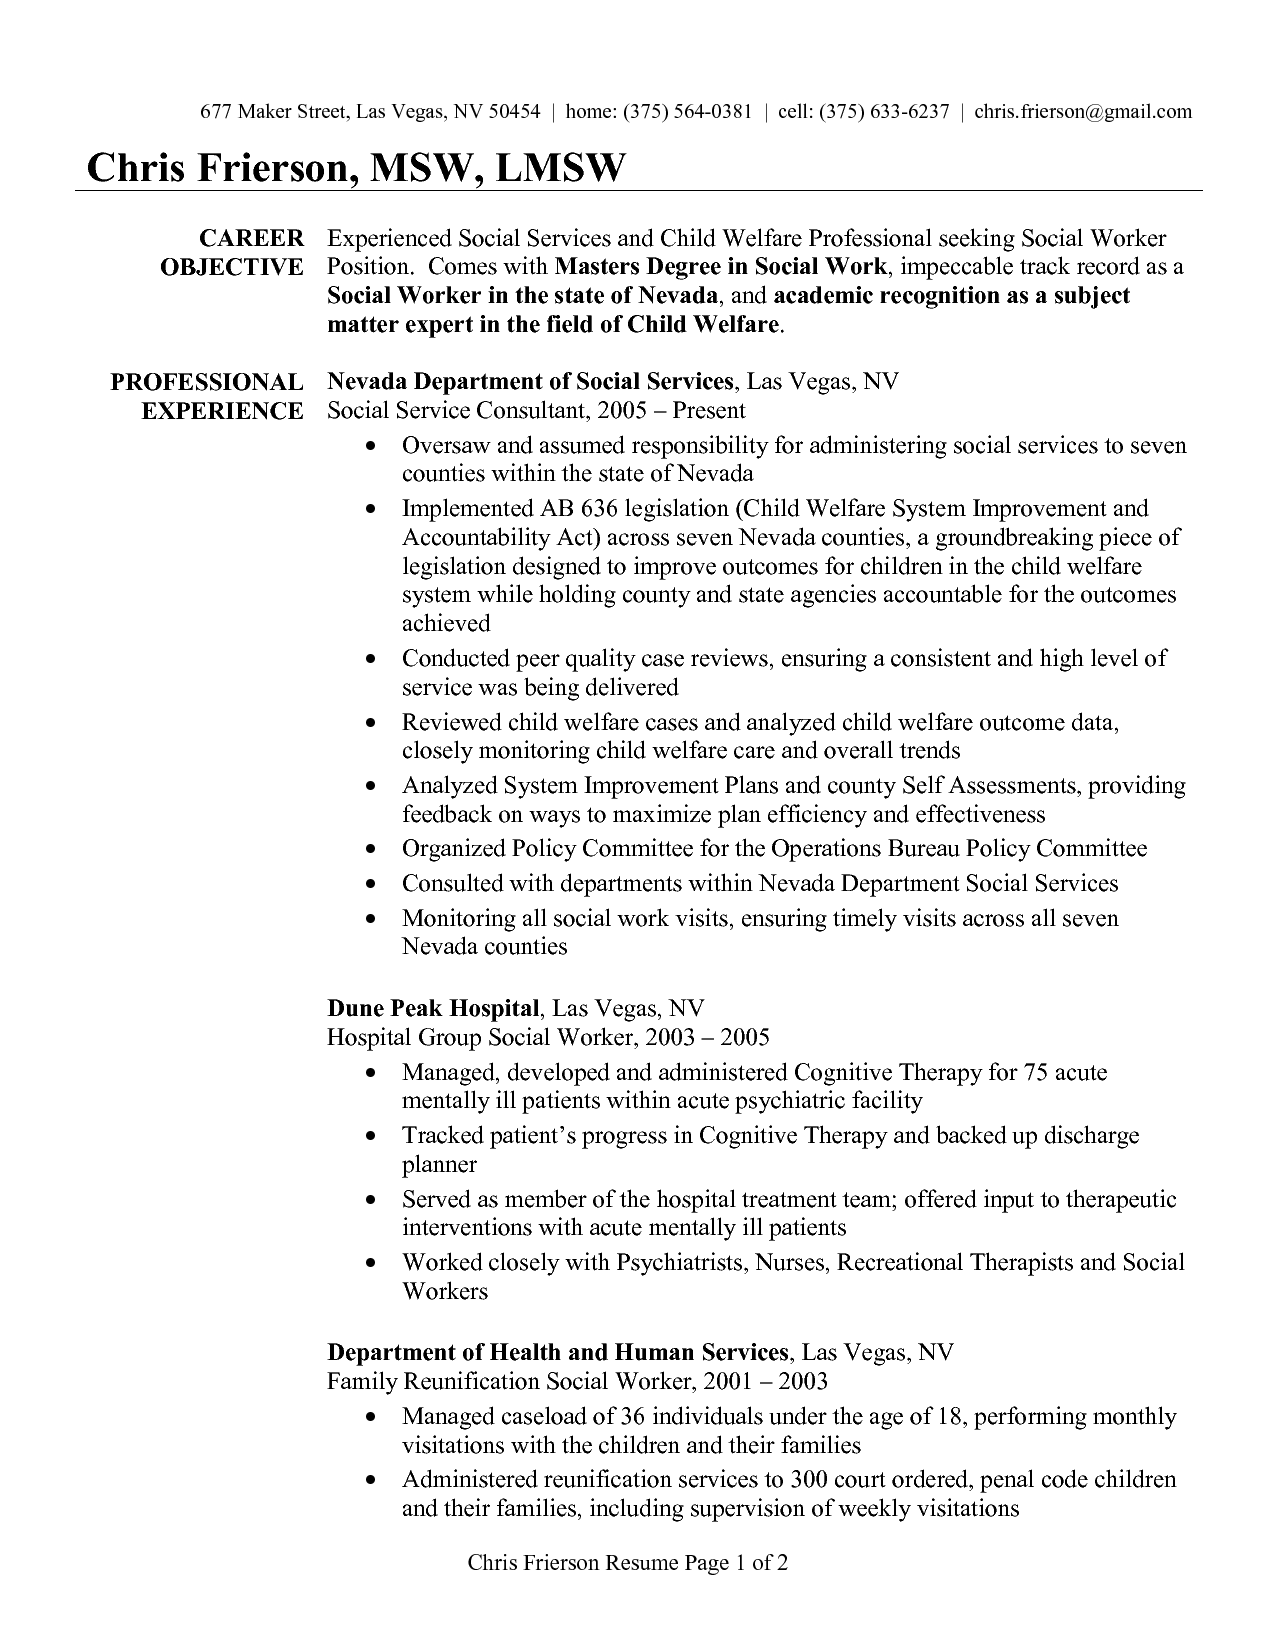 picture gallery of social work resume objective statement